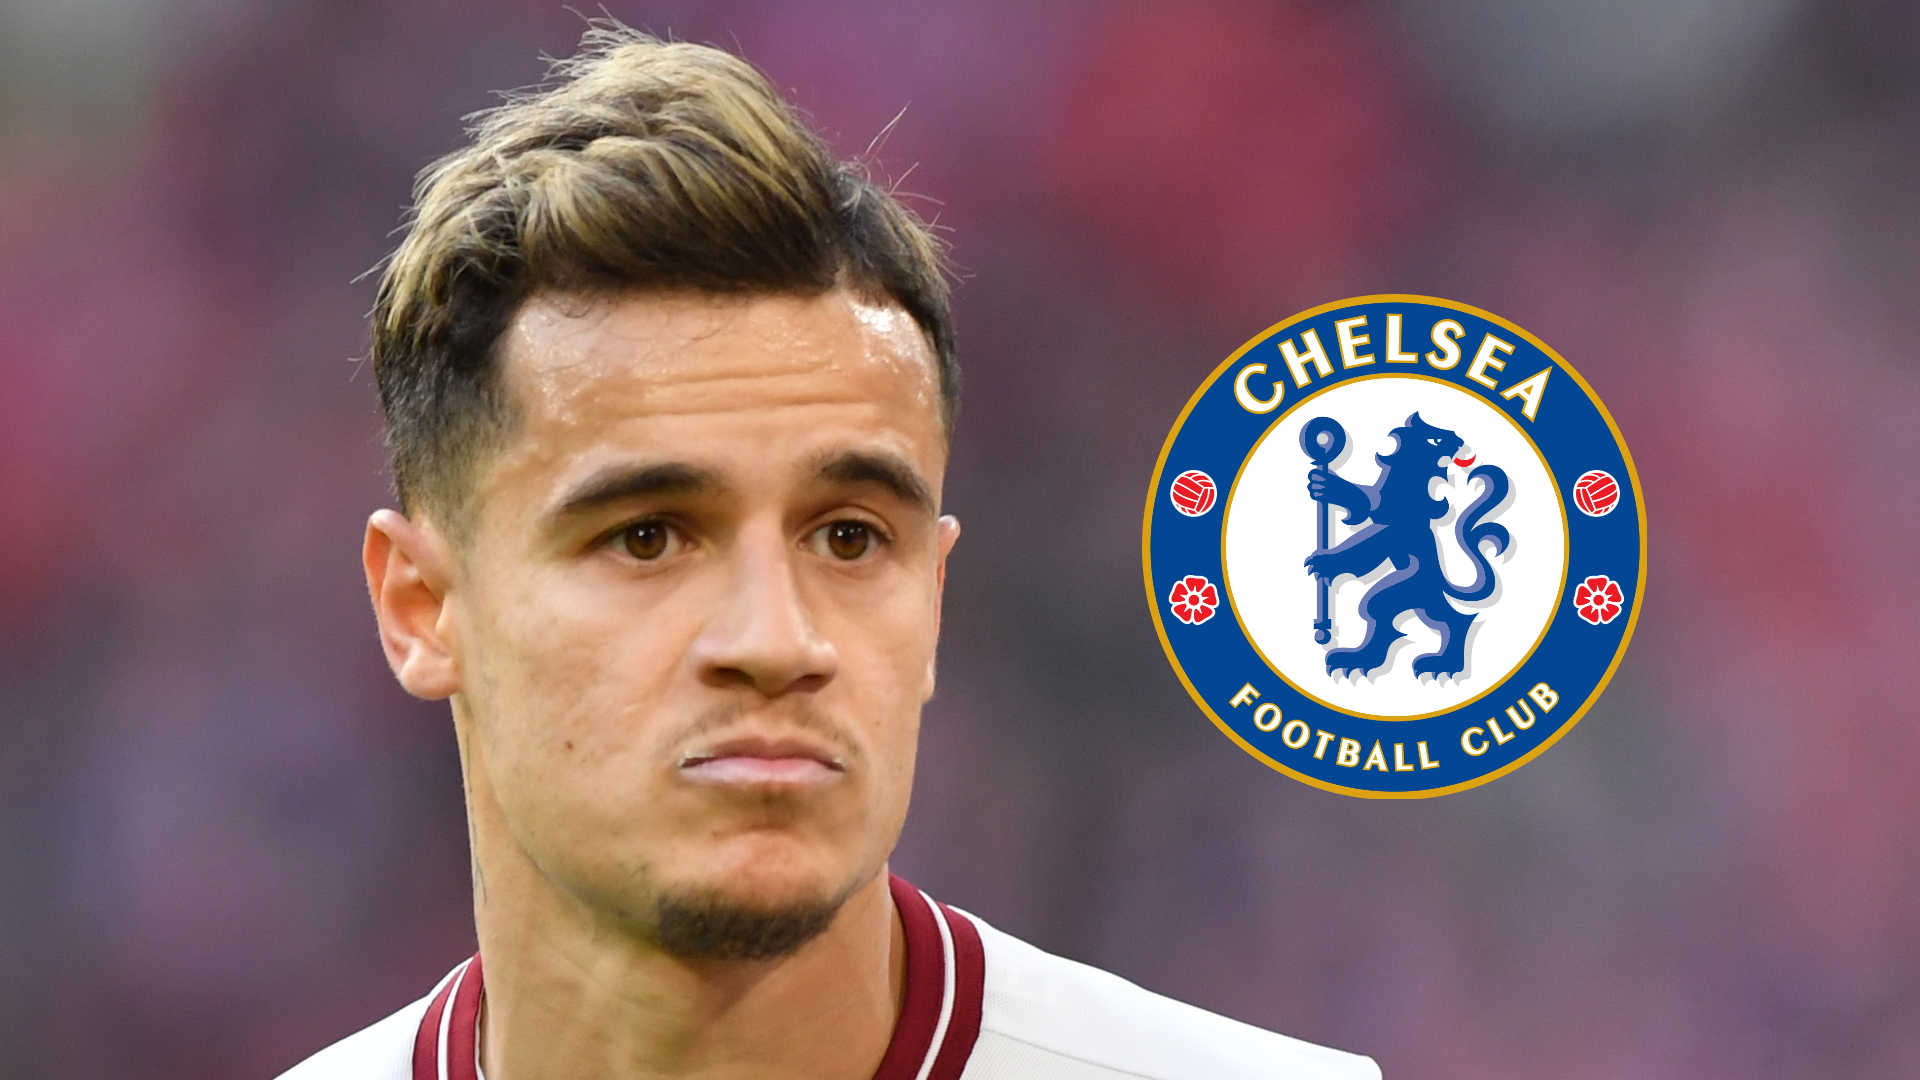 'Chelsea won't be put off Coutinho by injury' – Brazilian's Barcelona future remains uncertain, admits Rivaldo